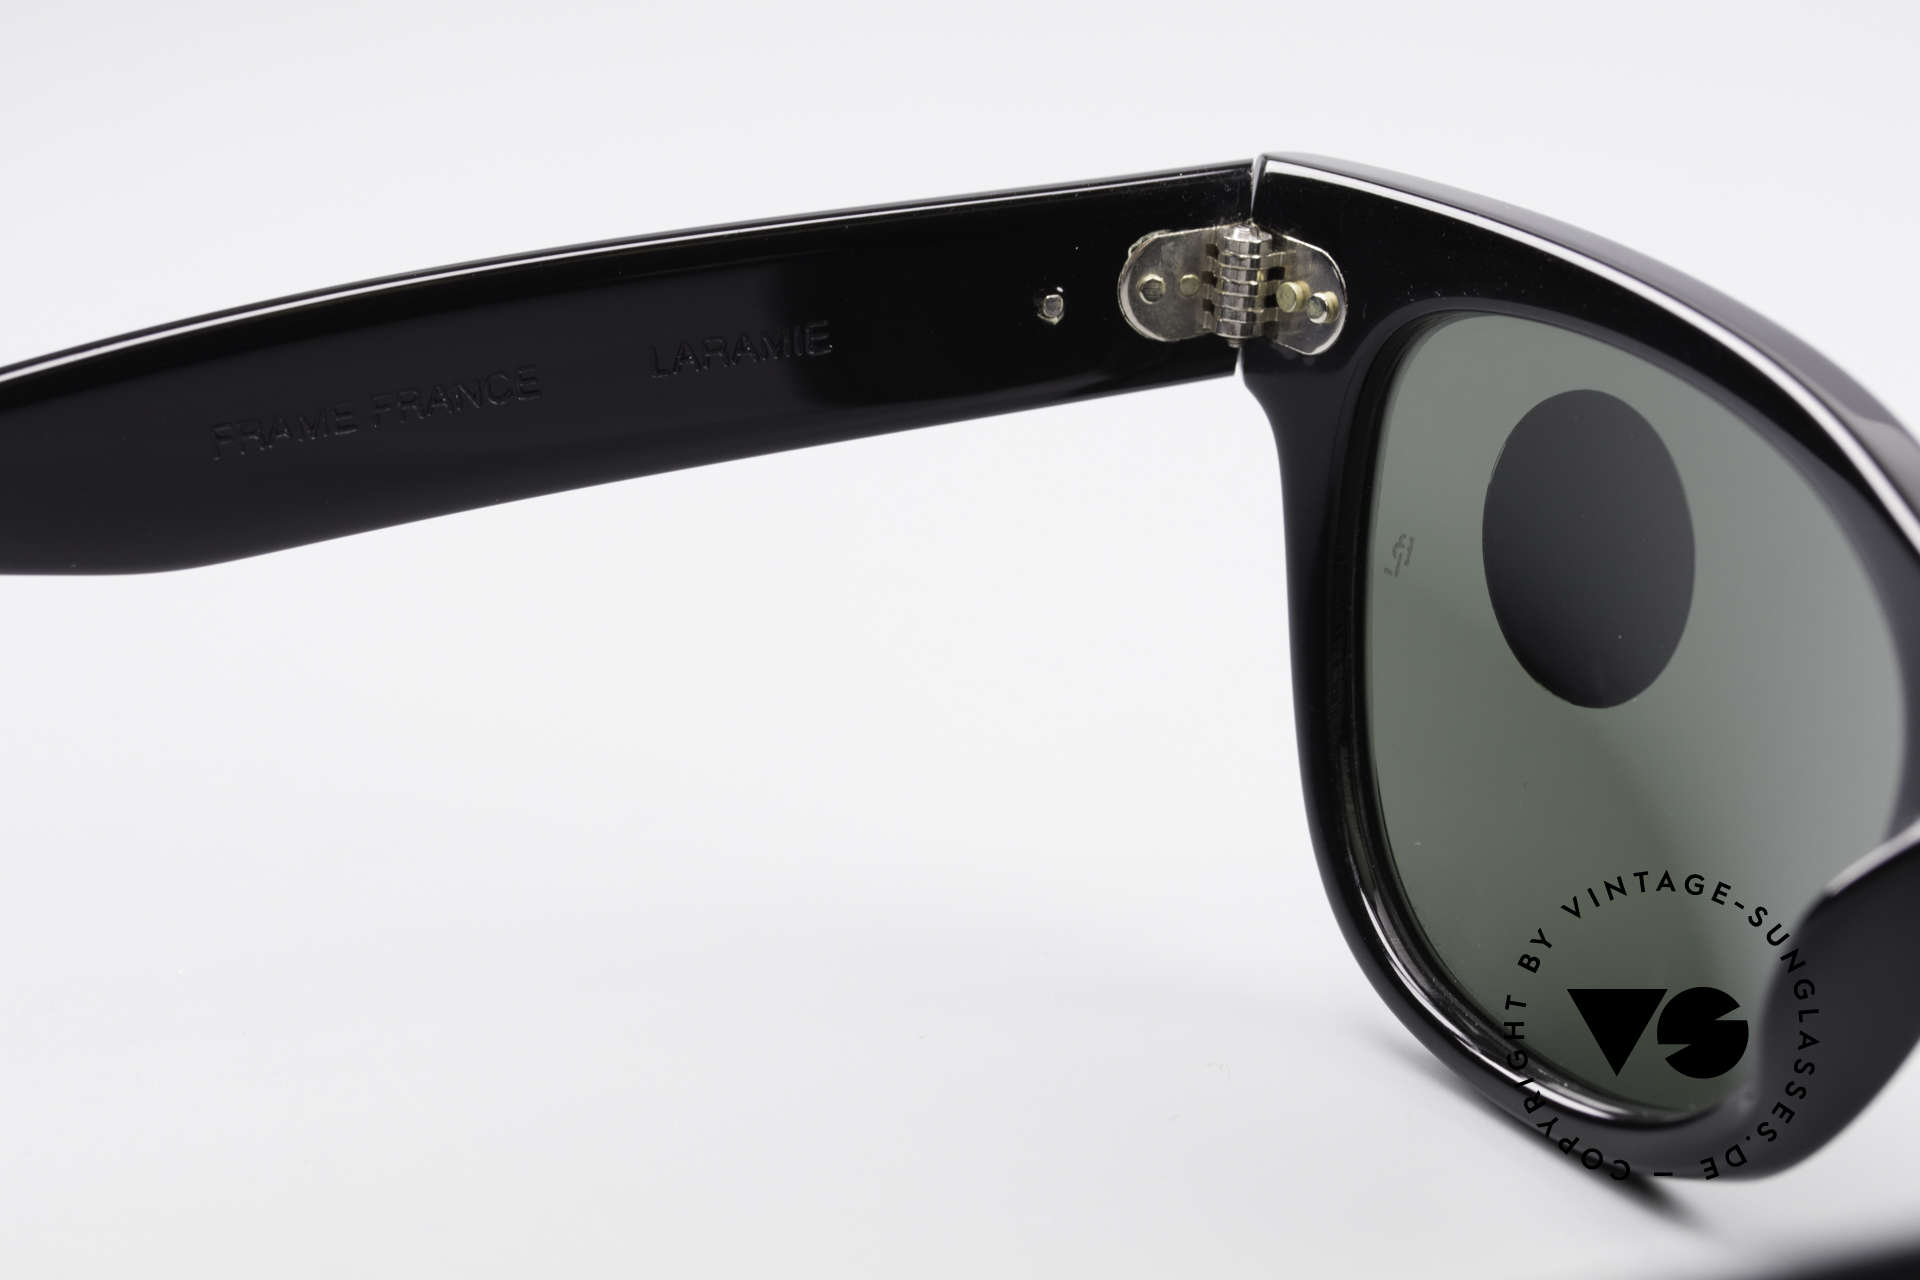 Ray Ban Laramie B&L Vintage Ladies Sunglasses, the frame could be glazed with optical lenses, too, Made for Women